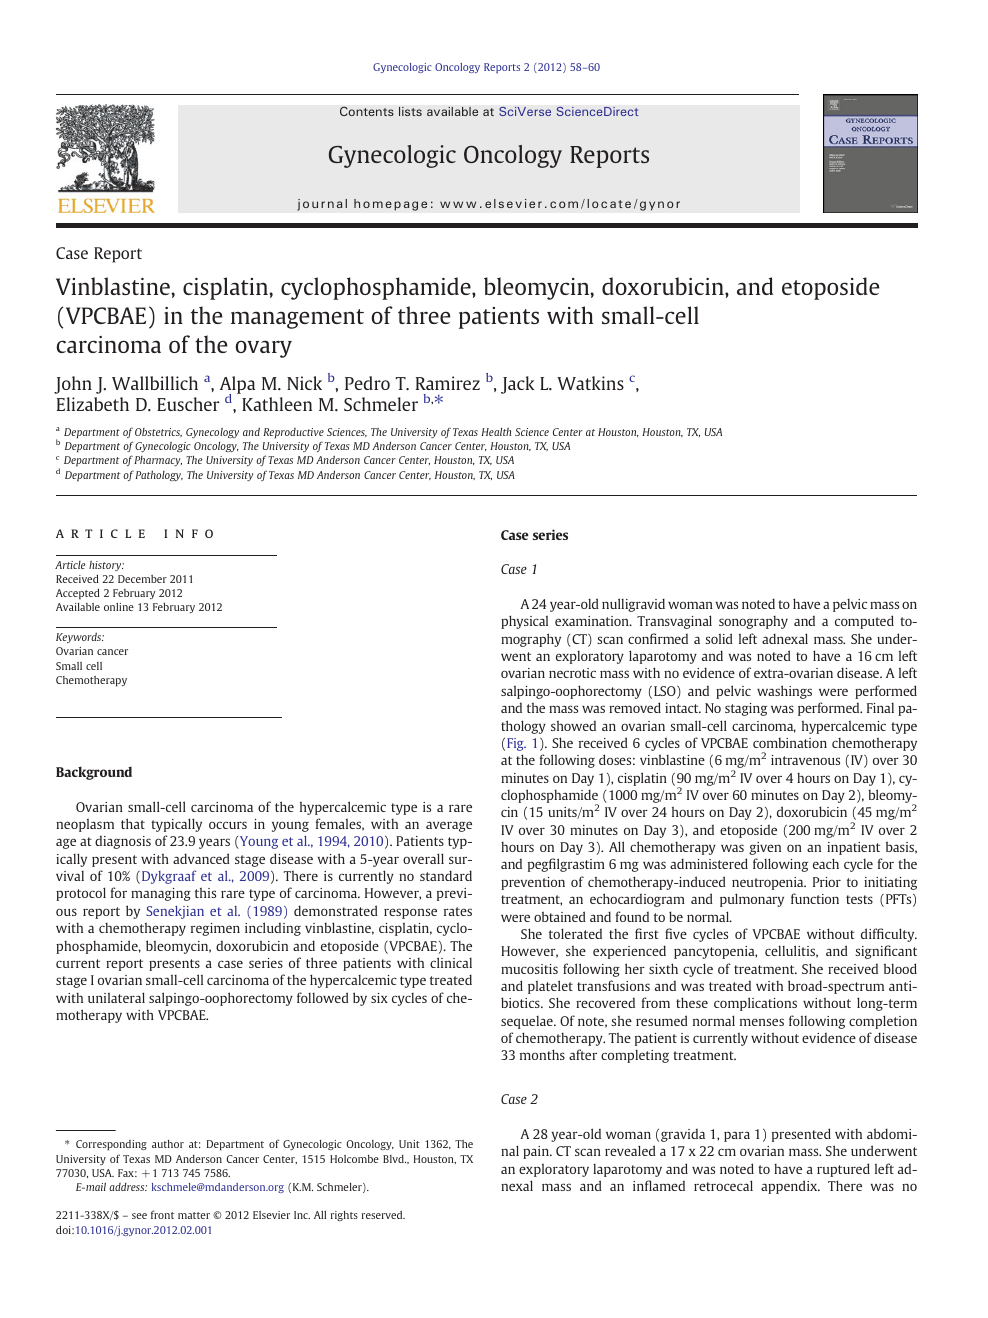 Vinblastine Cisplatin Cyclophosphamide Bleomycin Doxorubicin And Etoposide Vpcbae In The Management Of Three Patients With Small Cell Carcinoma Of The Ovary Topic Of Research Paper In Clinical Medicine Download Scholarly Article Pdf